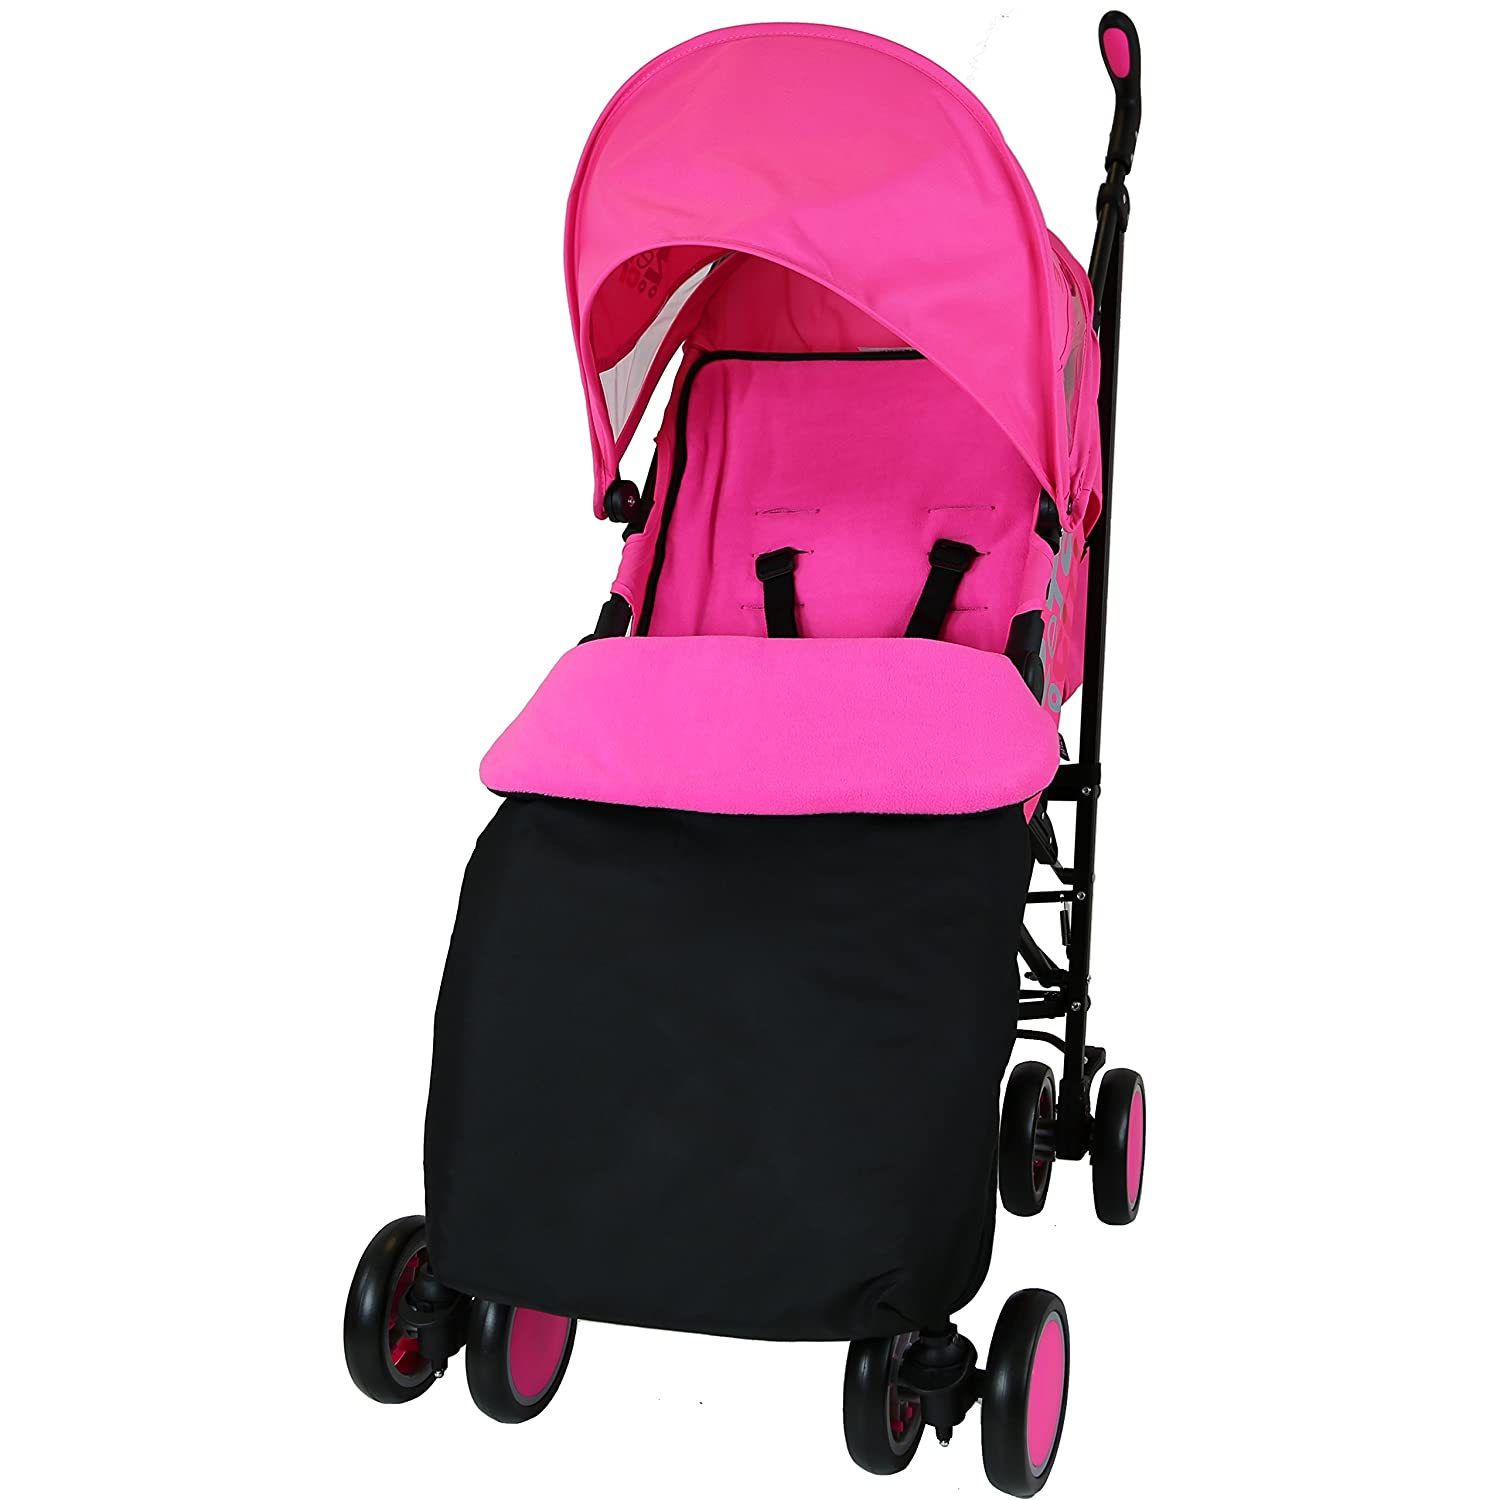 Zeta Citi Stroller Buggy Pushchair - Raspberry Pink (Complete With Footmuff + Raincover) Baby Travel ZeCi-PinCOM